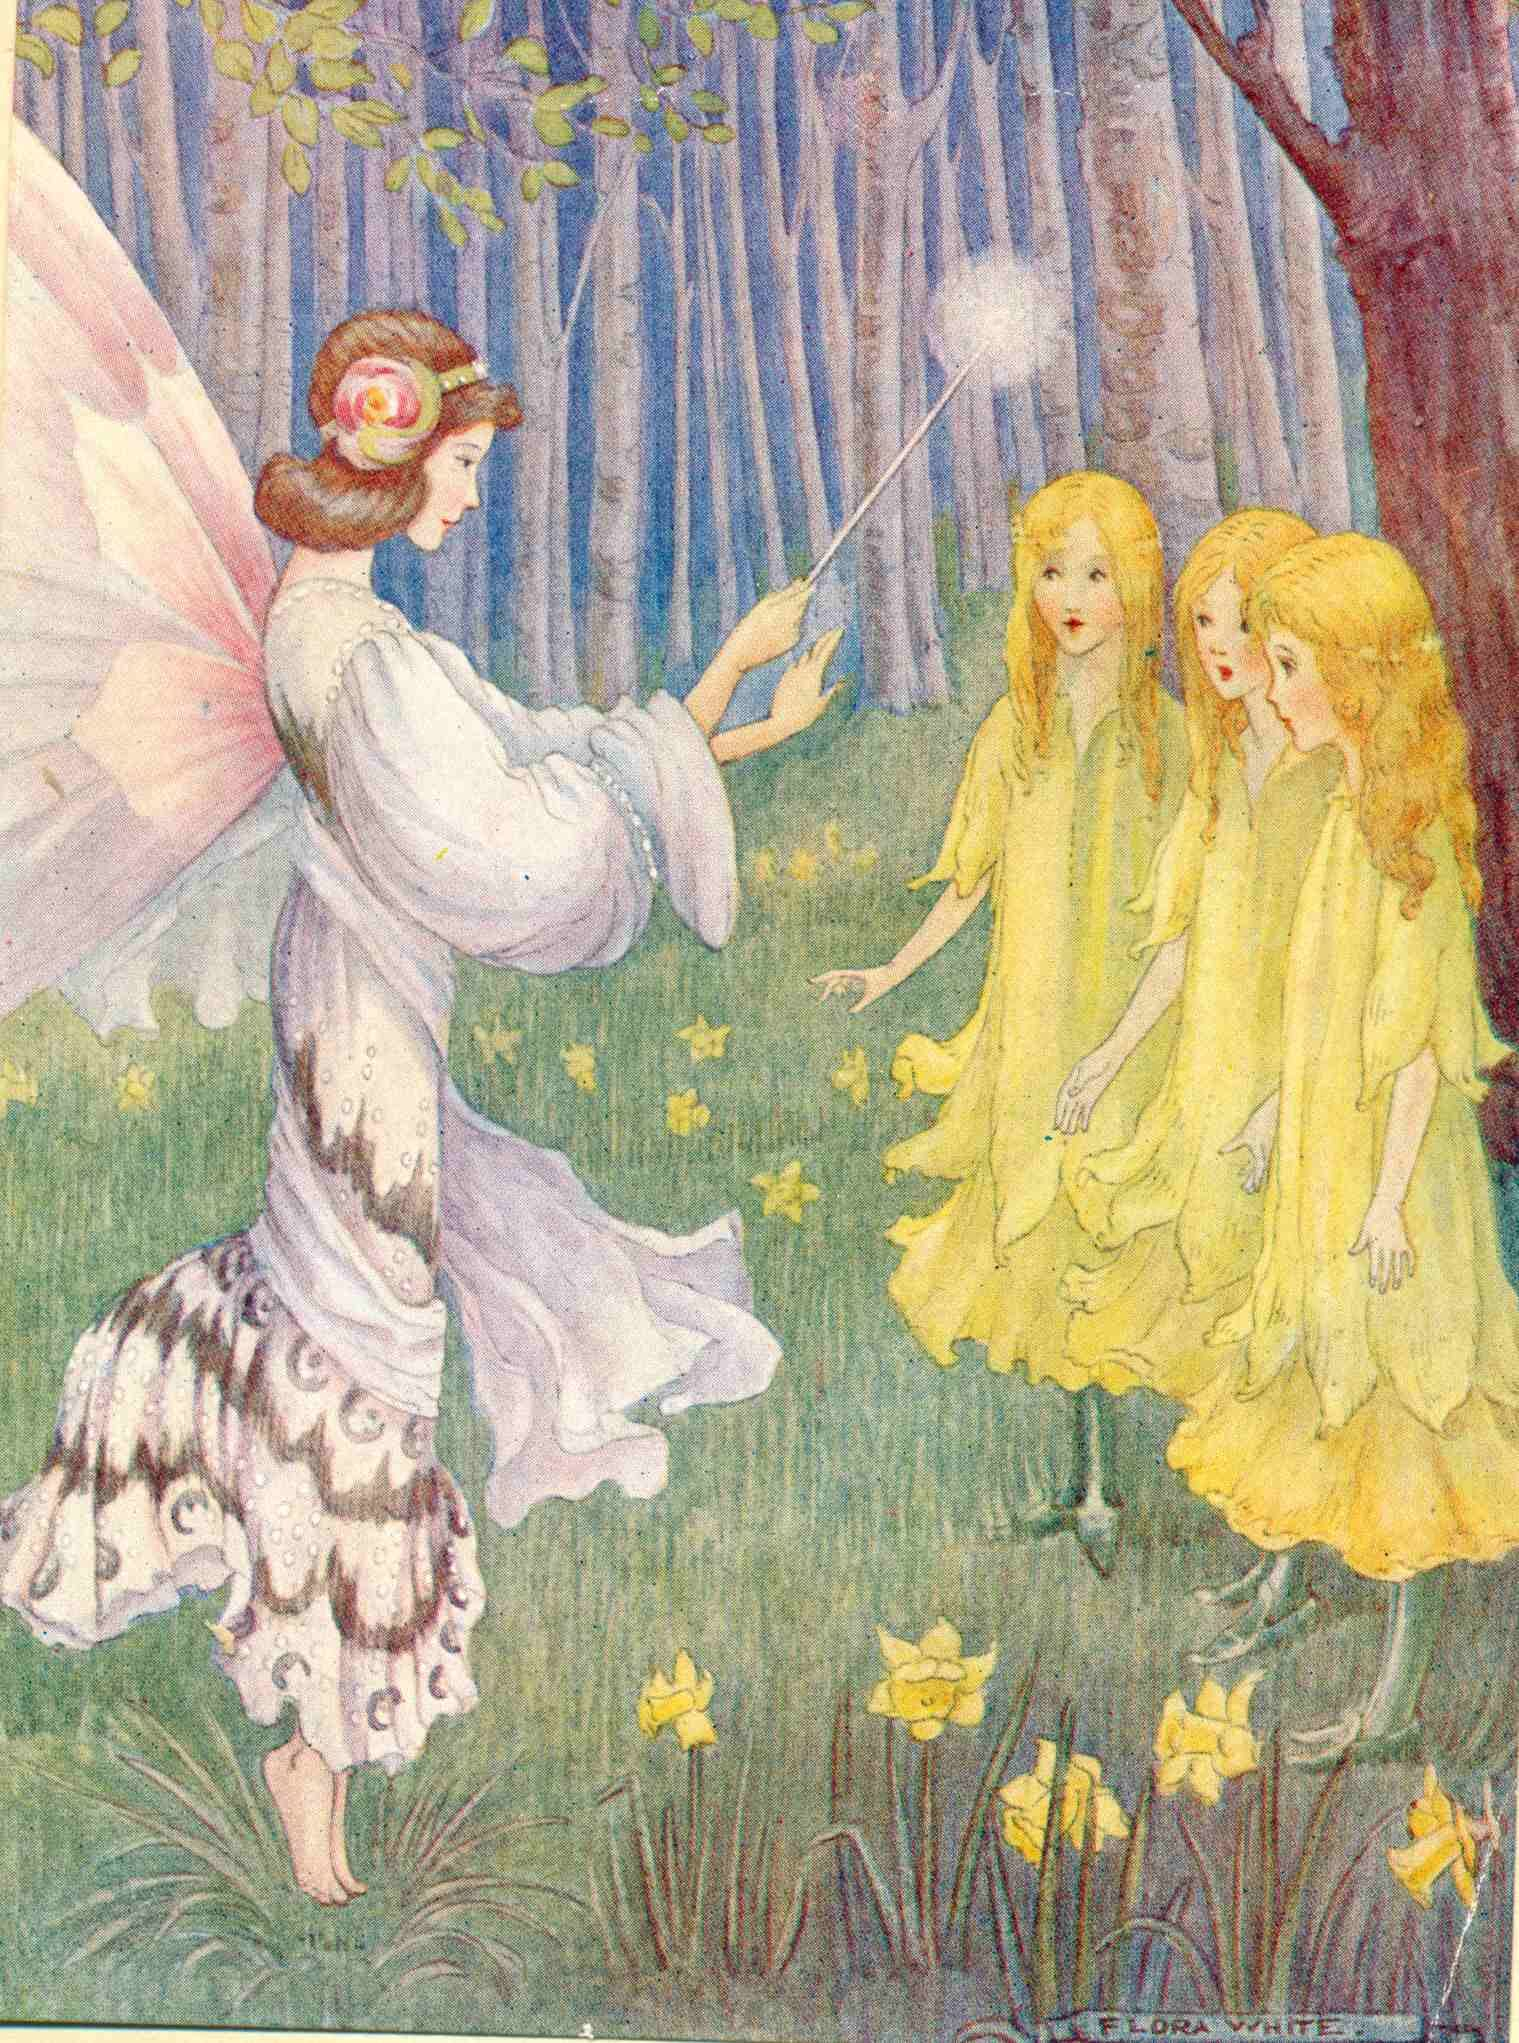 Daffodil Fairies antique illustration from Stories Told to